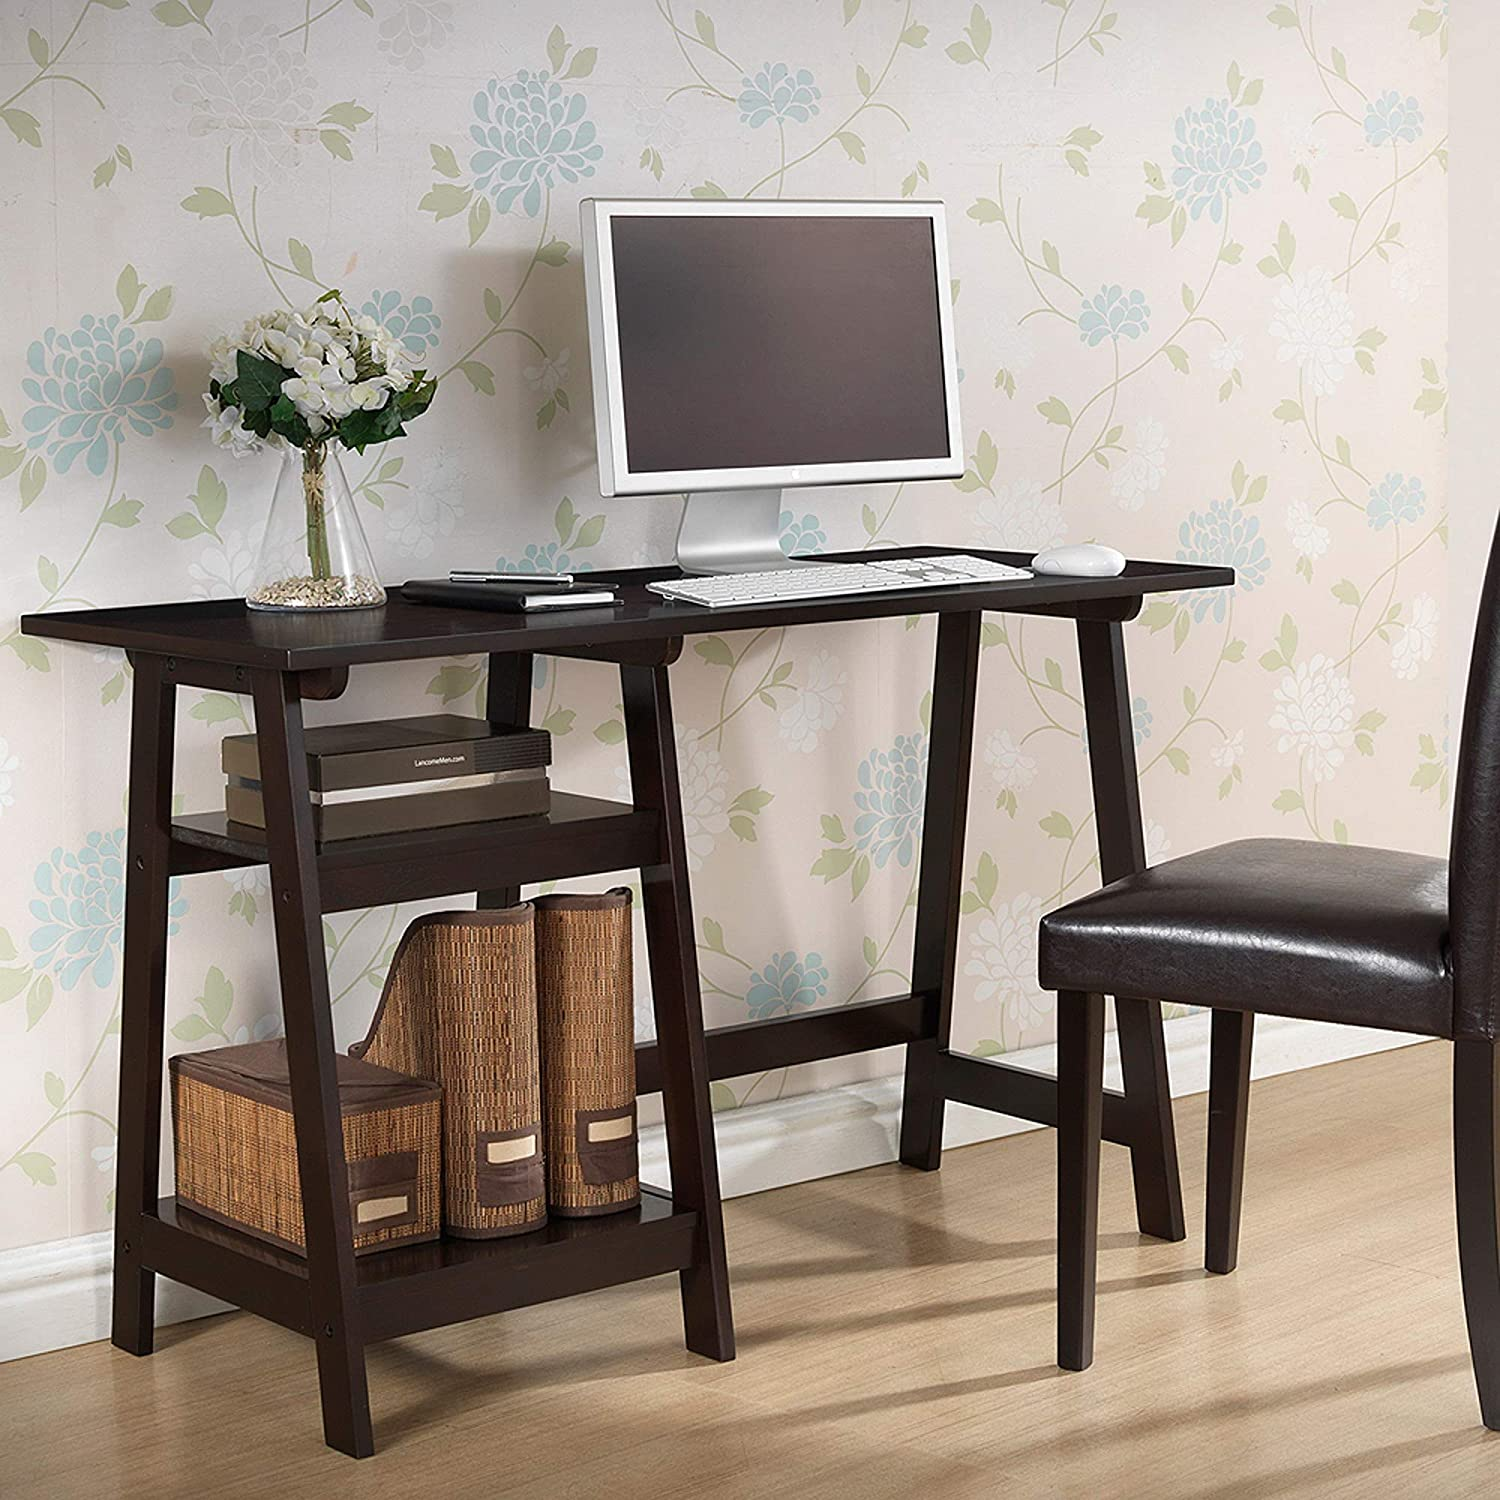 Dark brown wood modern desk with sawhorse legs small size compact made from engineered wood rubberwood veneers shelving work station bundle with our